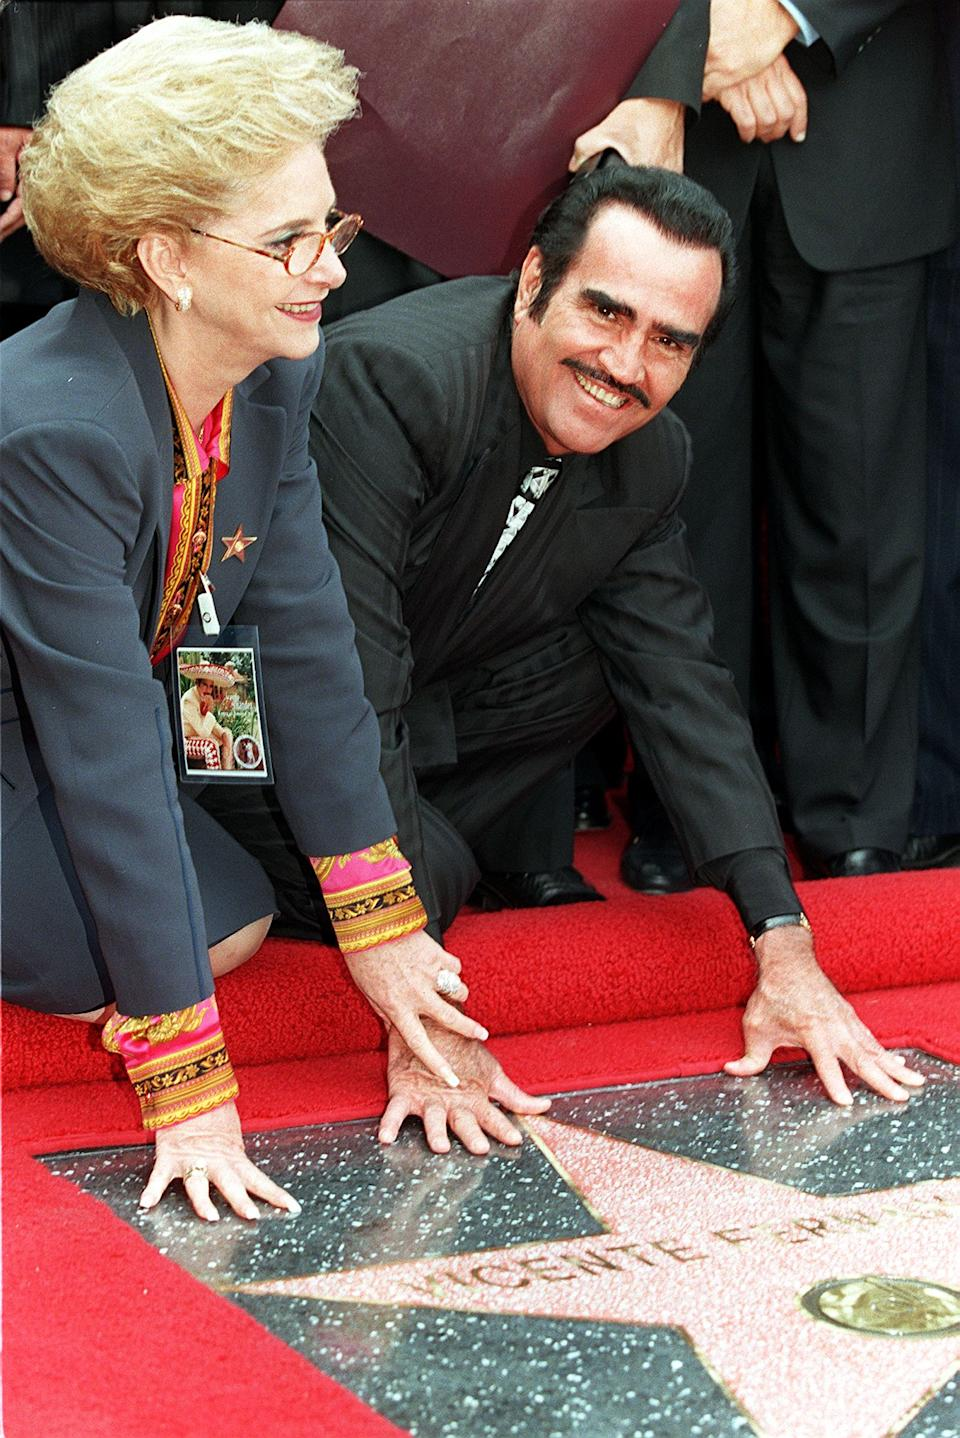 Vicente Fernández y su esposa cuando develaron su estrella en el Paseo de la Fama de Hollywood. (Photo credit should read HECTOR MATA/AFP via Getty Images)